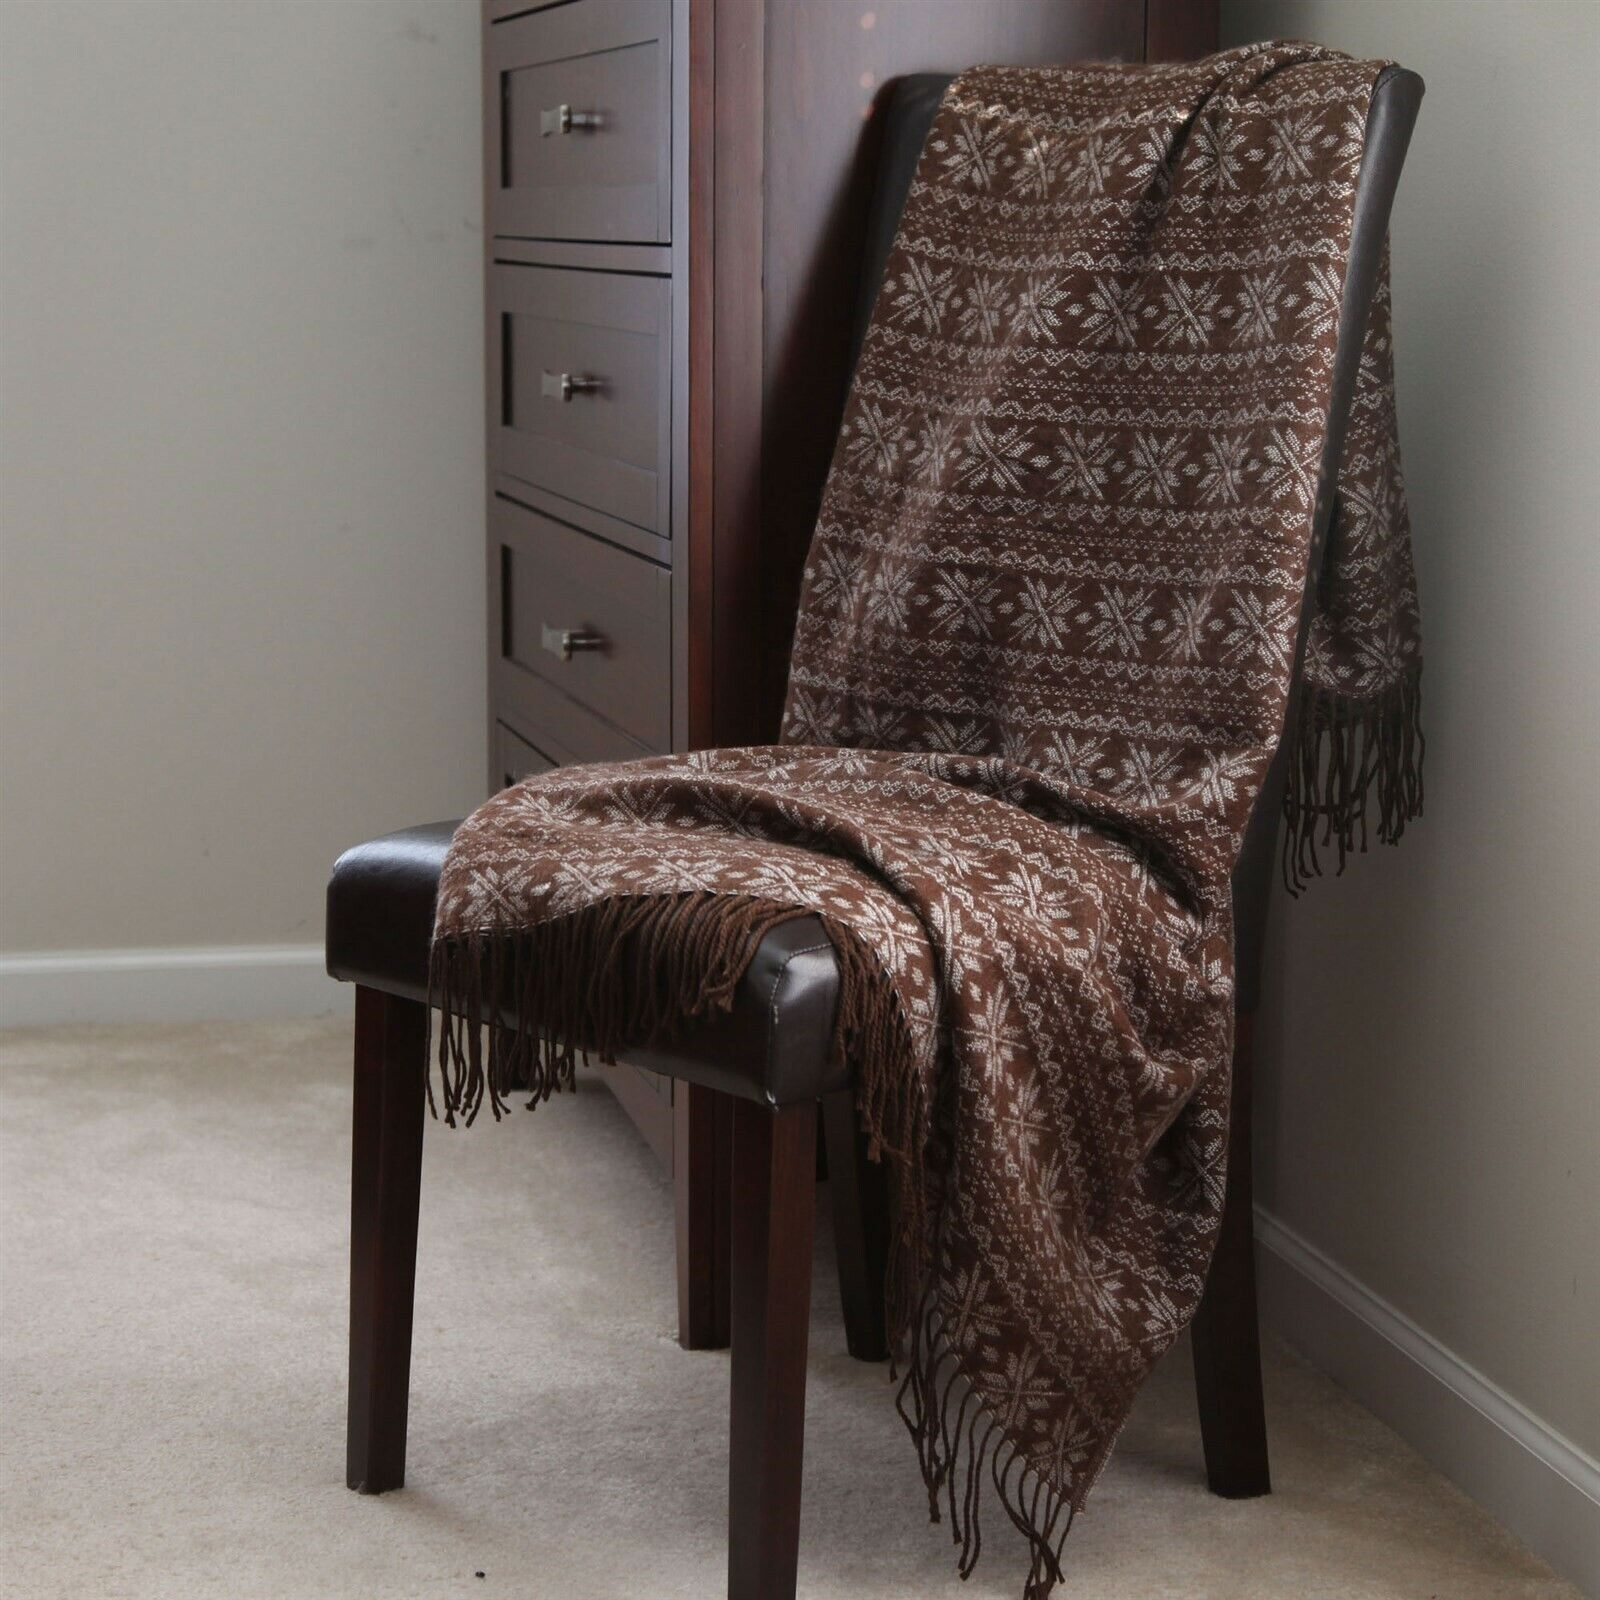 Lavish Home Jacquard Blanket Throw 50 x 60 - Brown